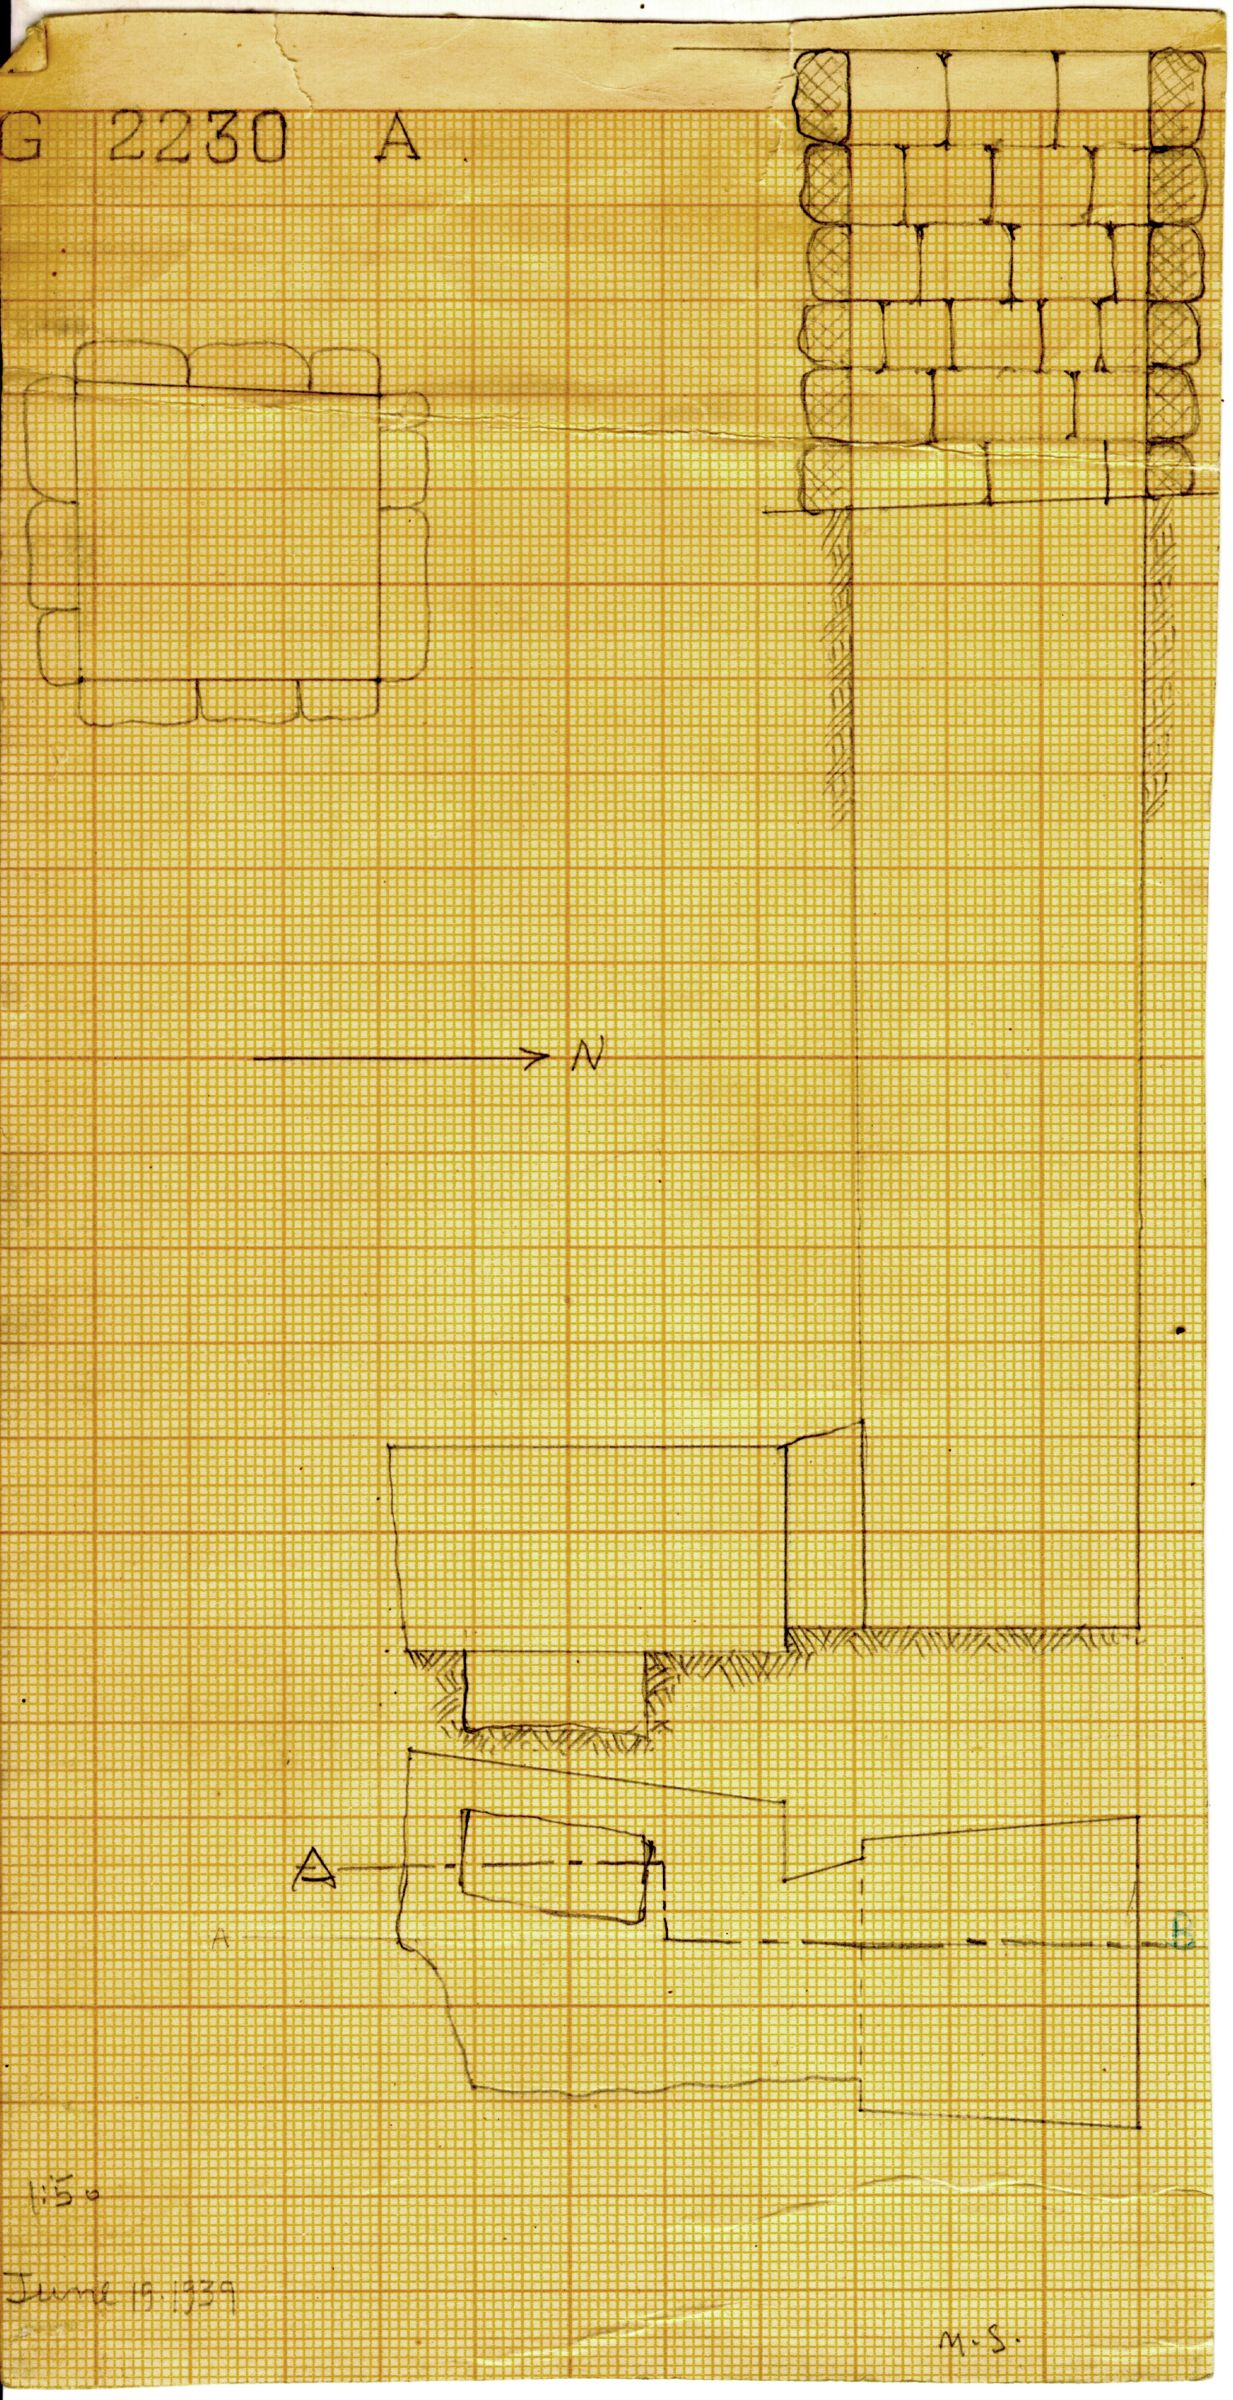 Maps and plans: G 2230+2231: G 2230, Shaft A